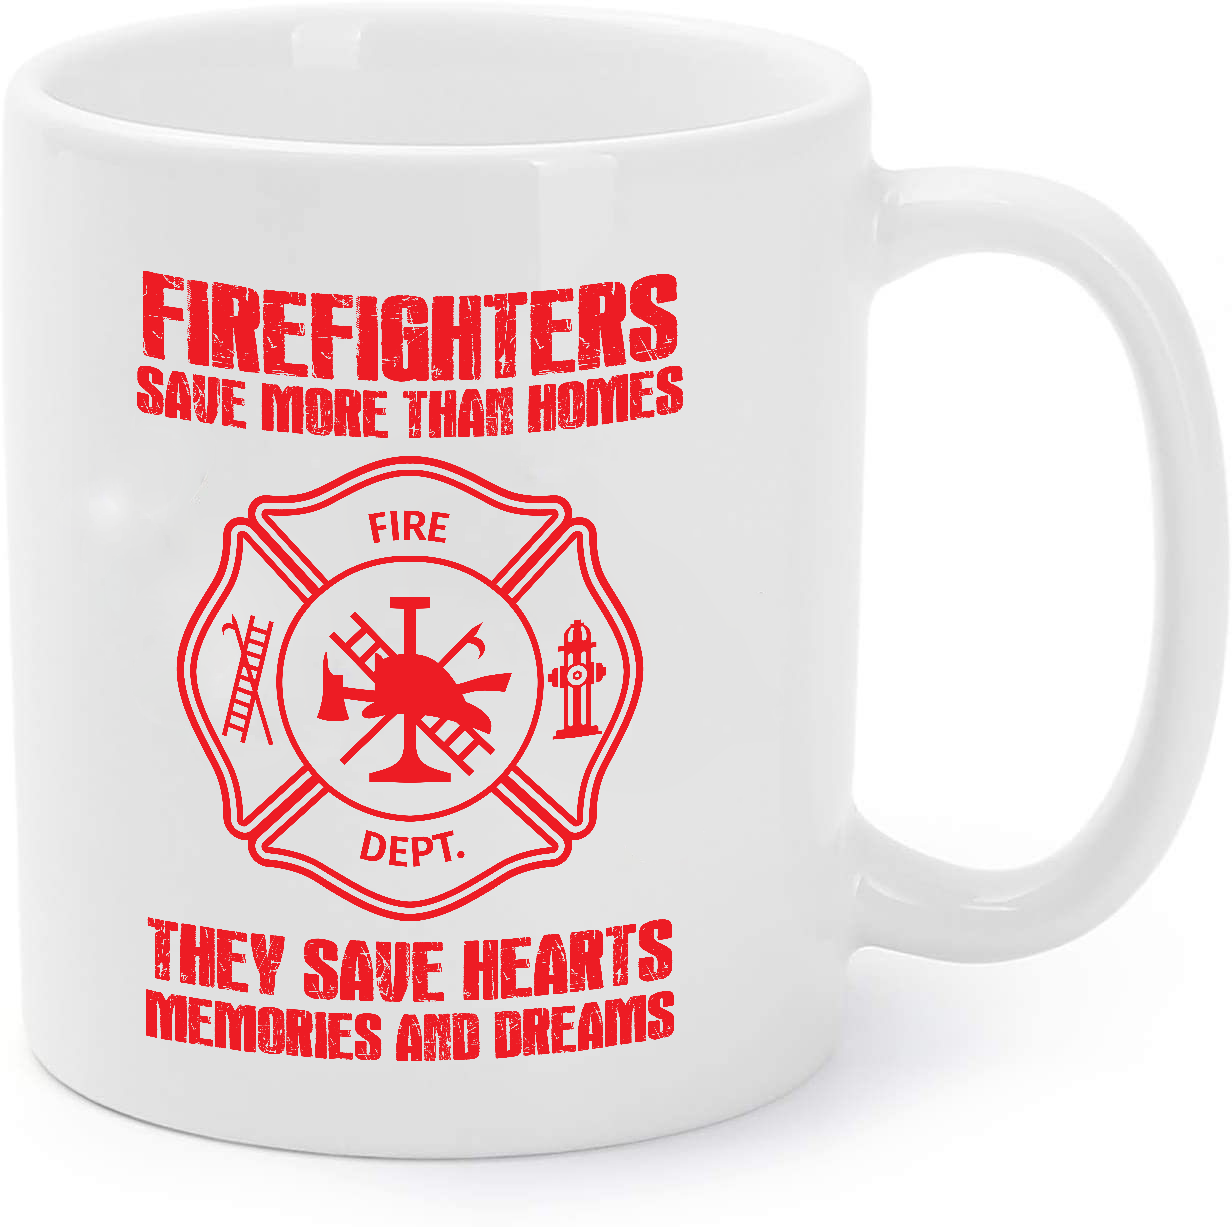 Primary image for Firefighter Gift - They Save Hearts Memories And Dreams Coffee Mug